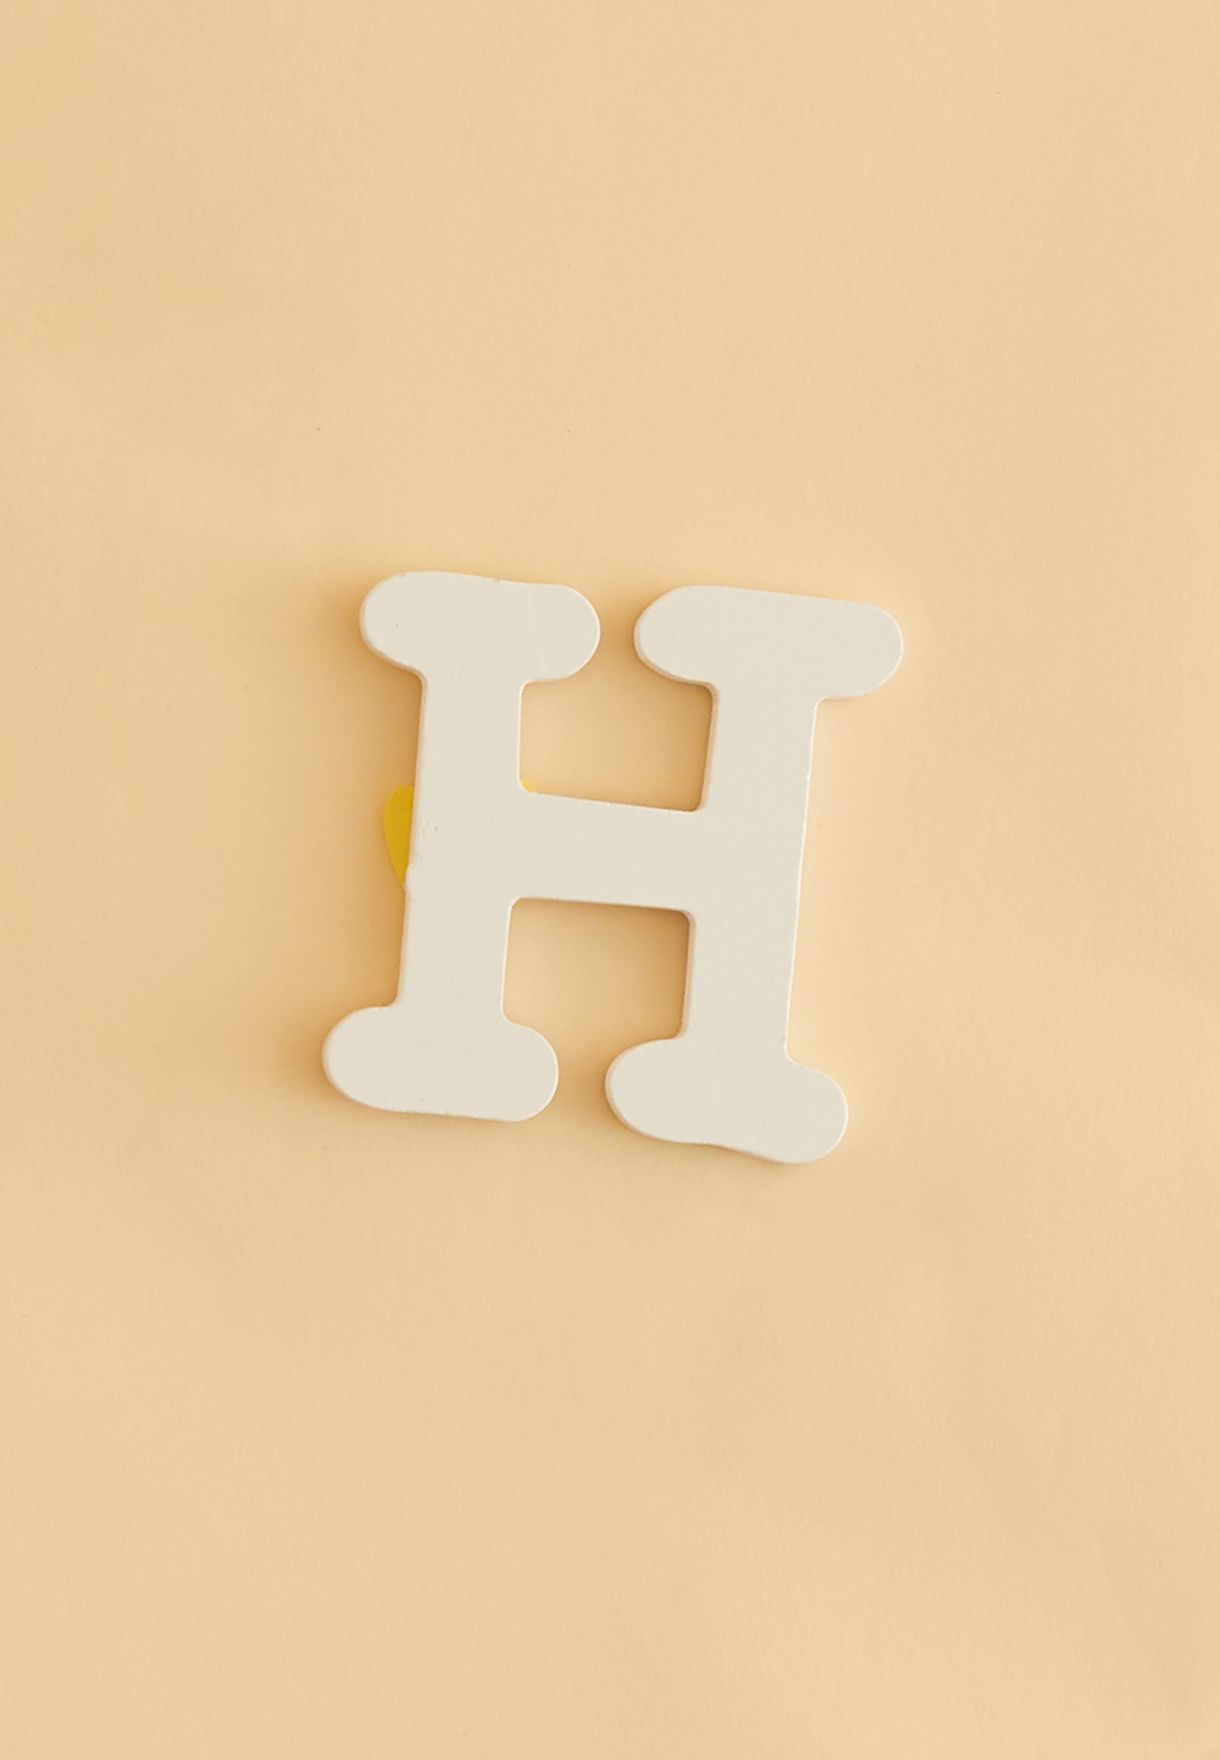 Initial H Wooden Letter